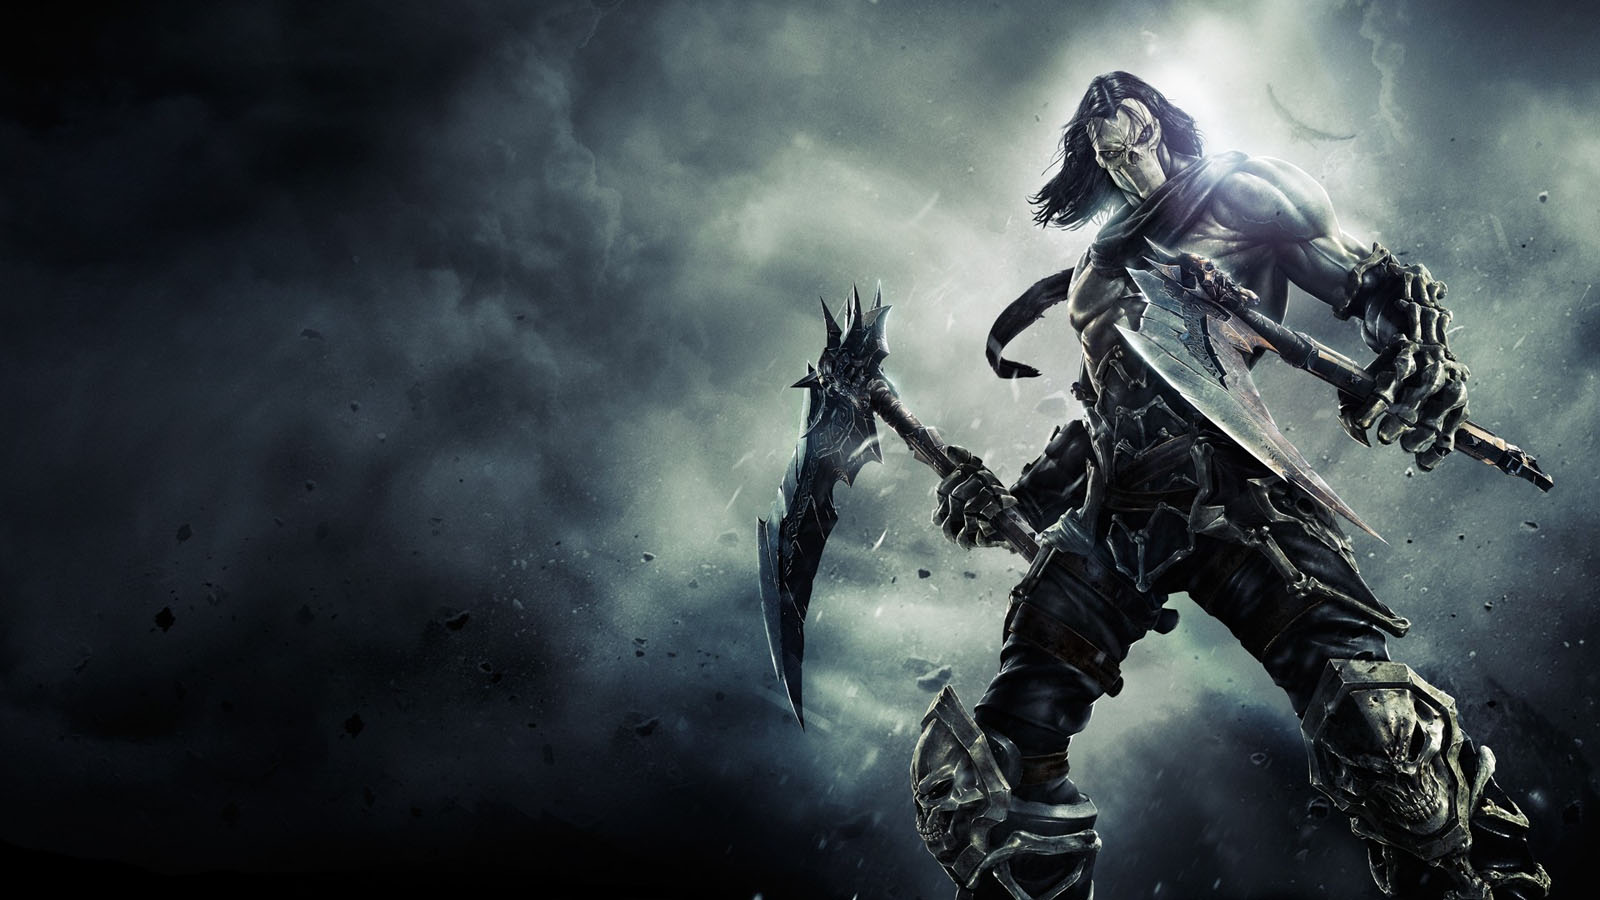 Warrior With Weapons Wallpaper 3D